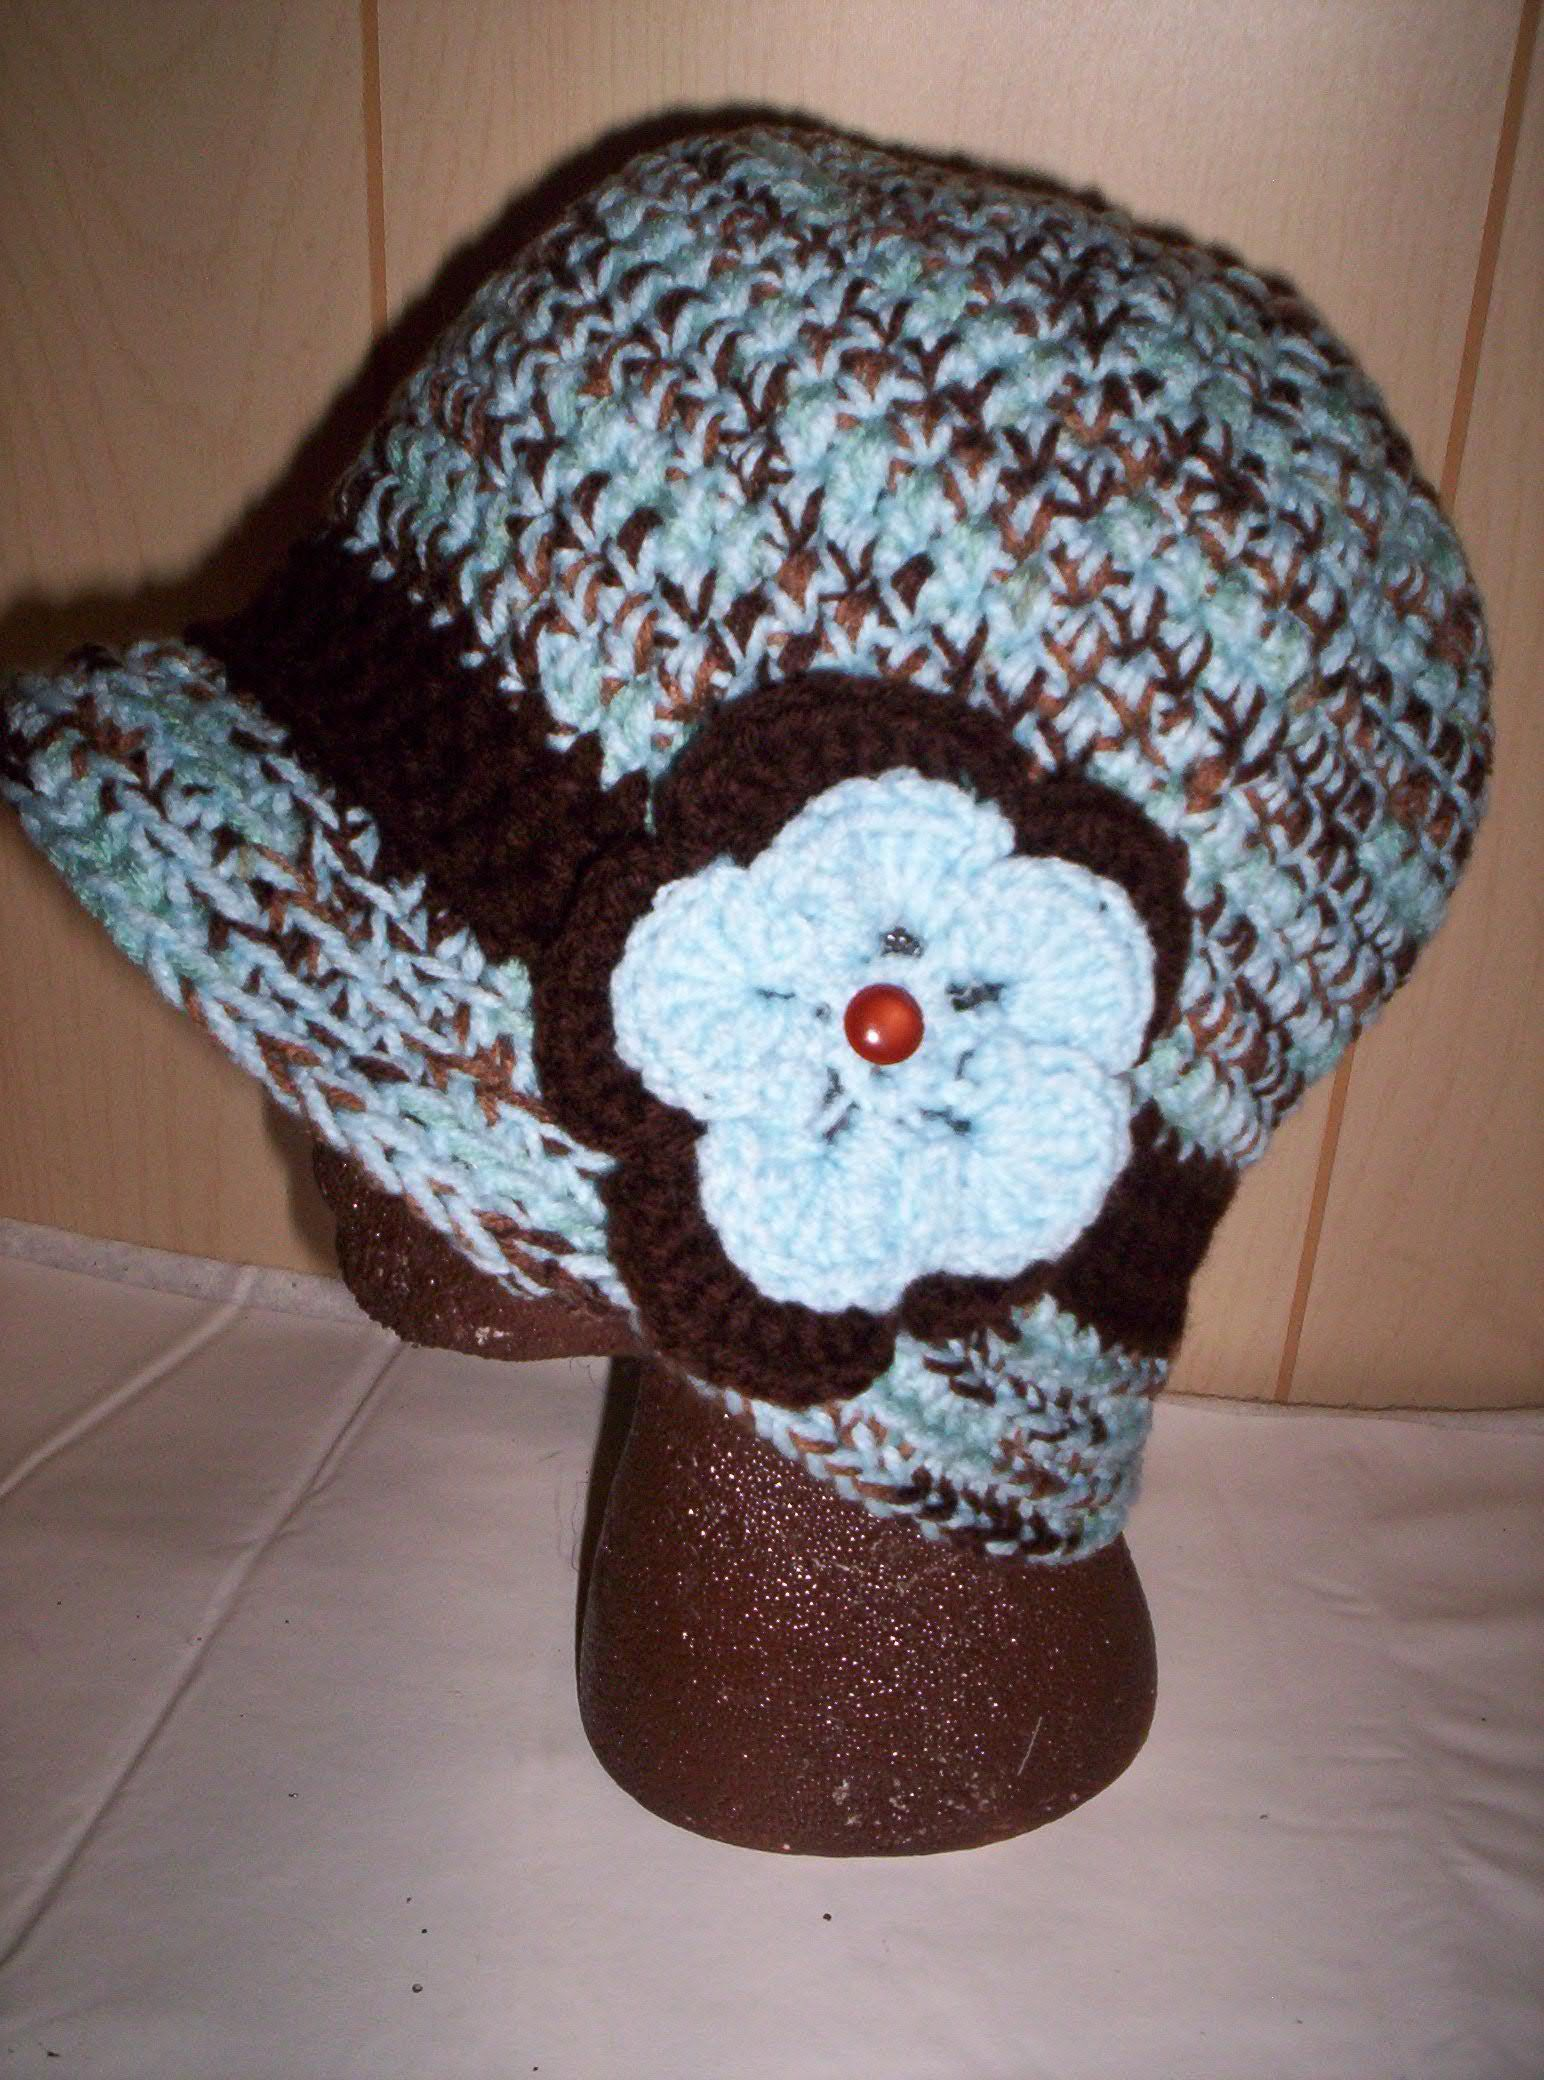 Crochet Hat Made With Two Strands Crochet Flower On Side